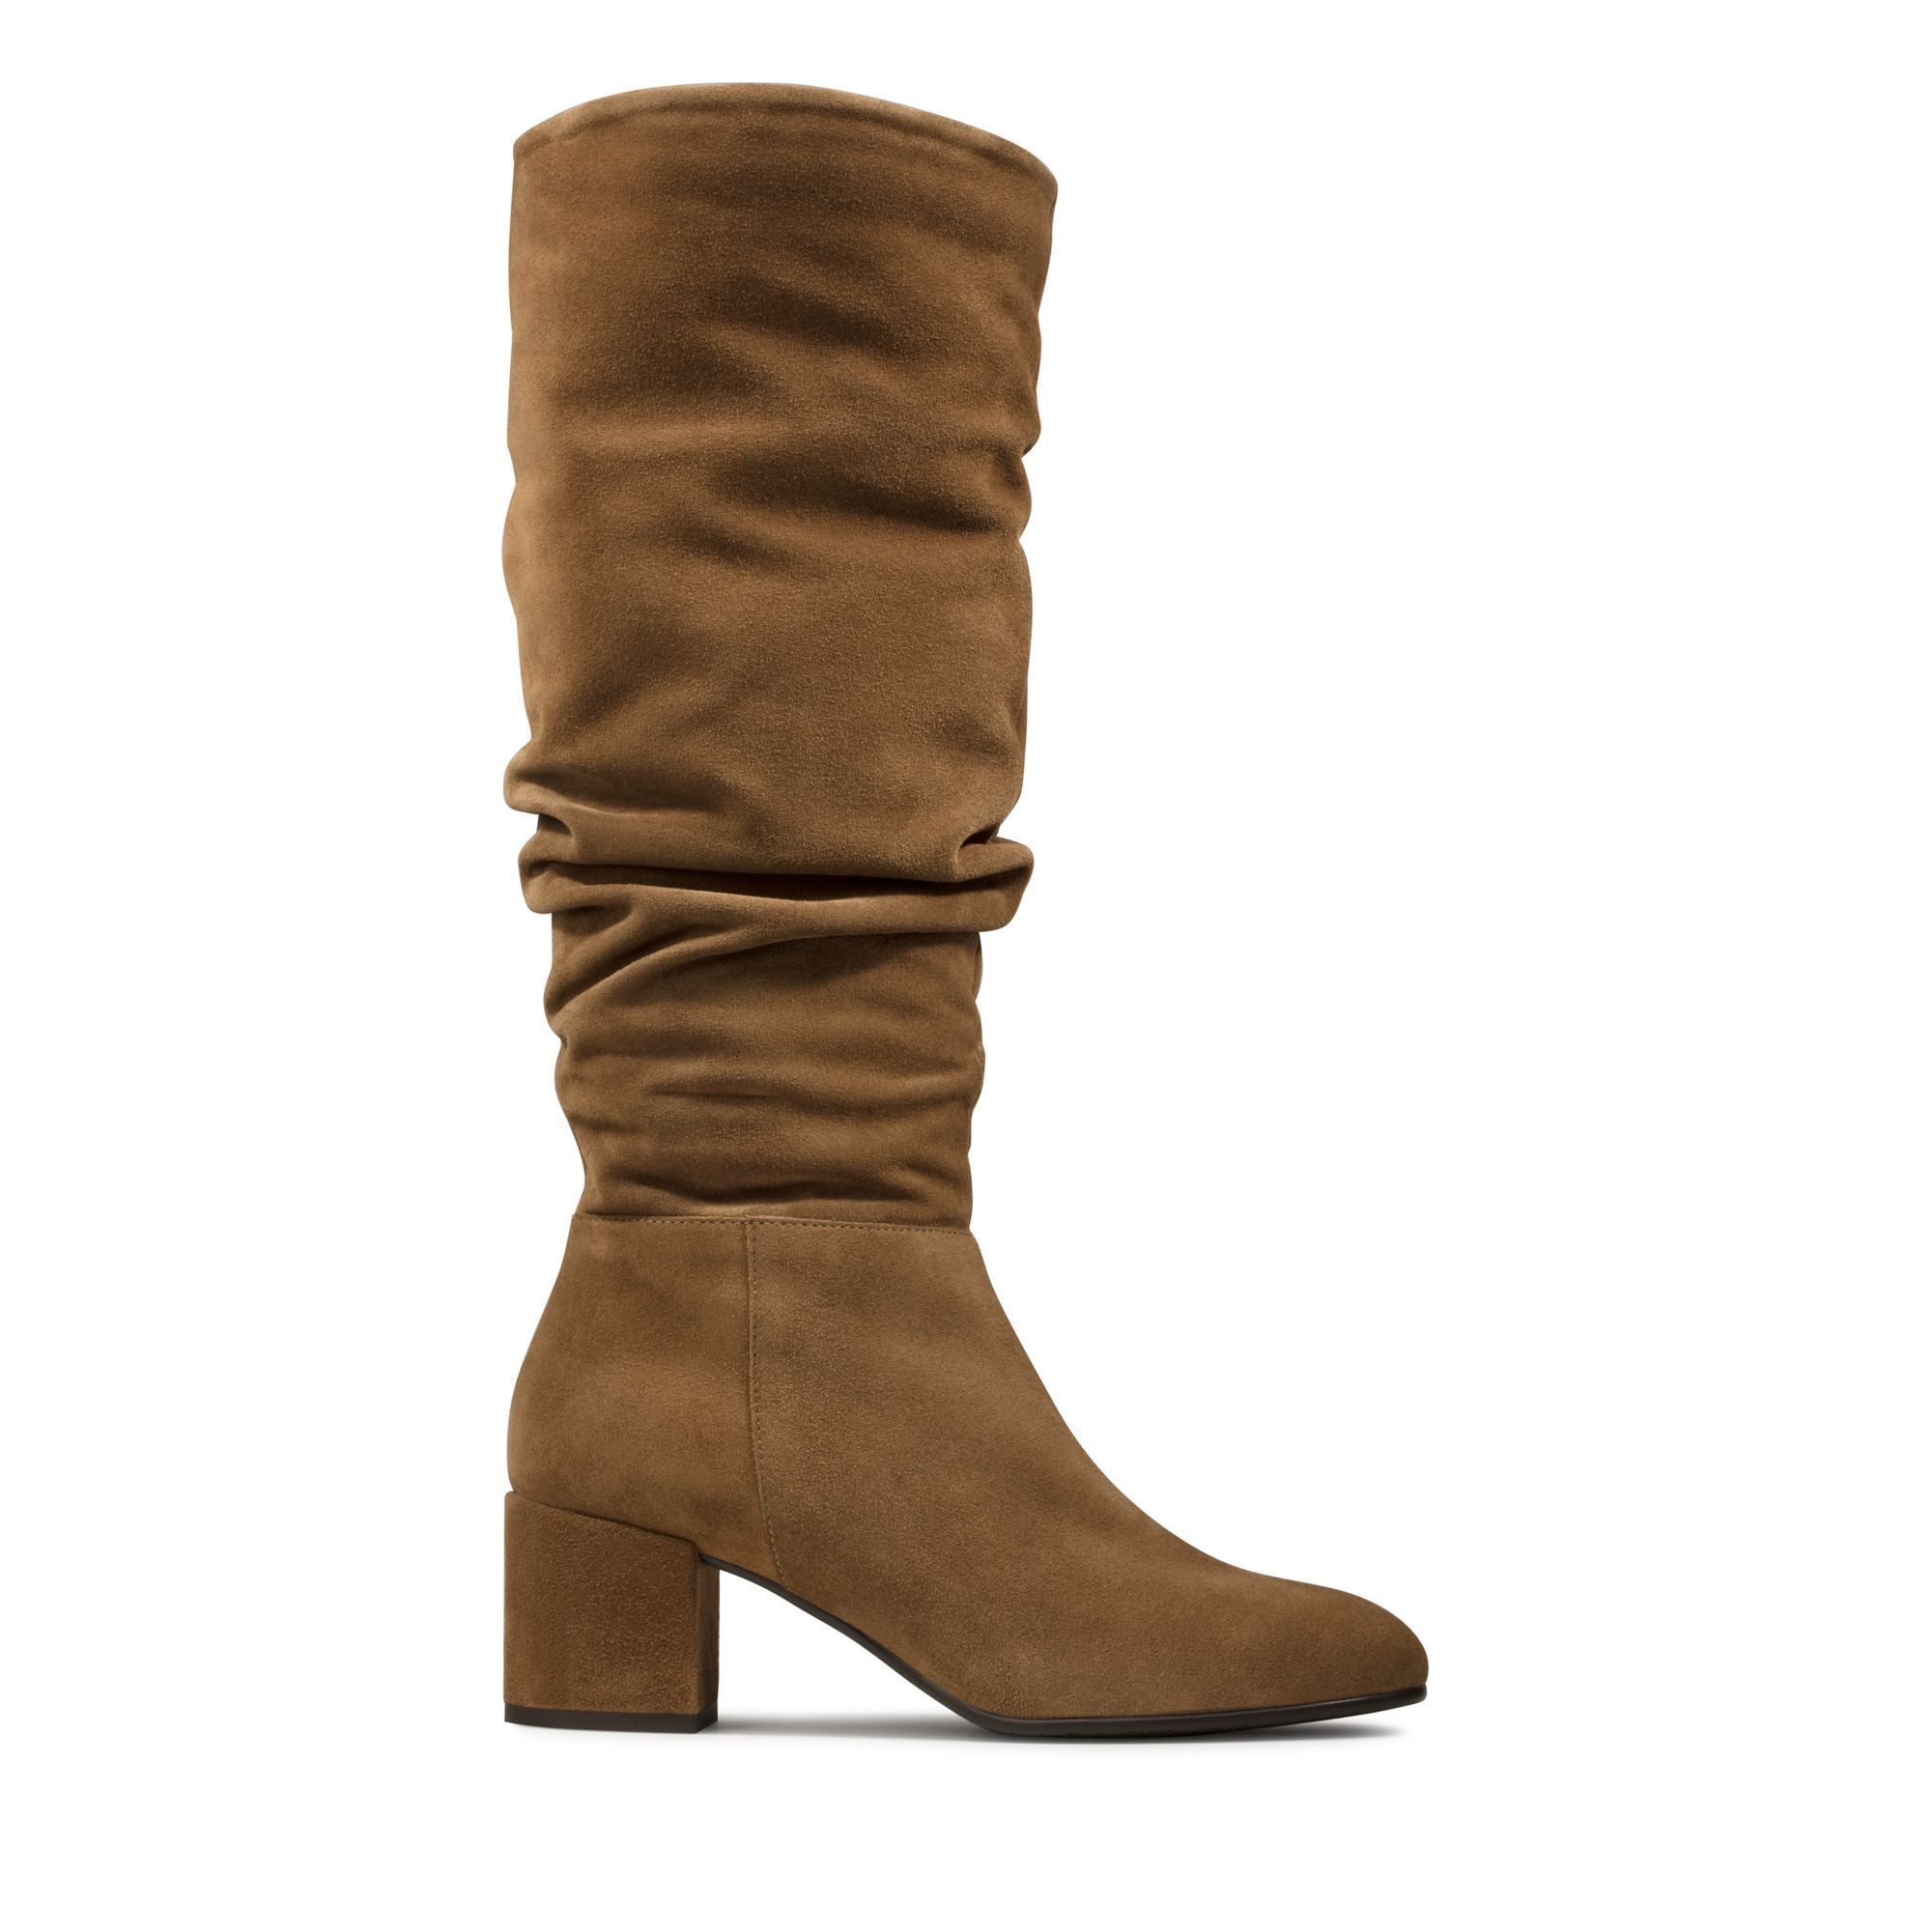 Big size winter long boots for women